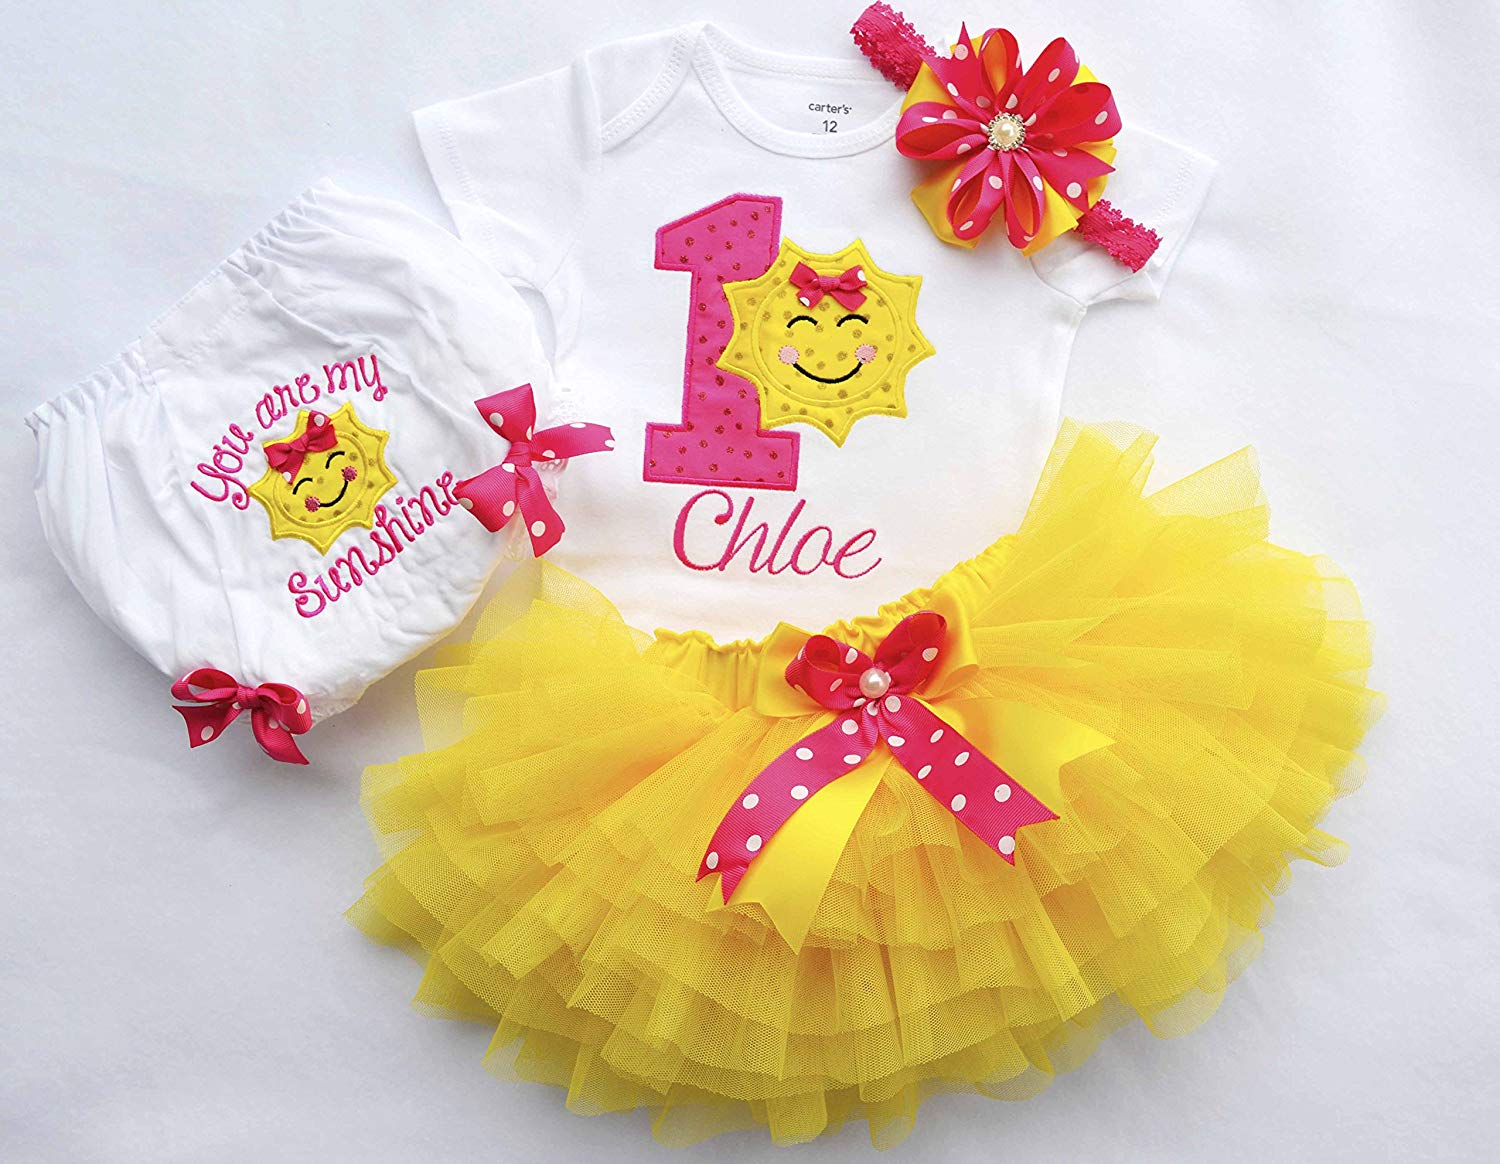 291667cc4 Get Quotations · You are my sunshine outfit,First birthday outfit girl,Sunshine  Birthday Outfit,Girls